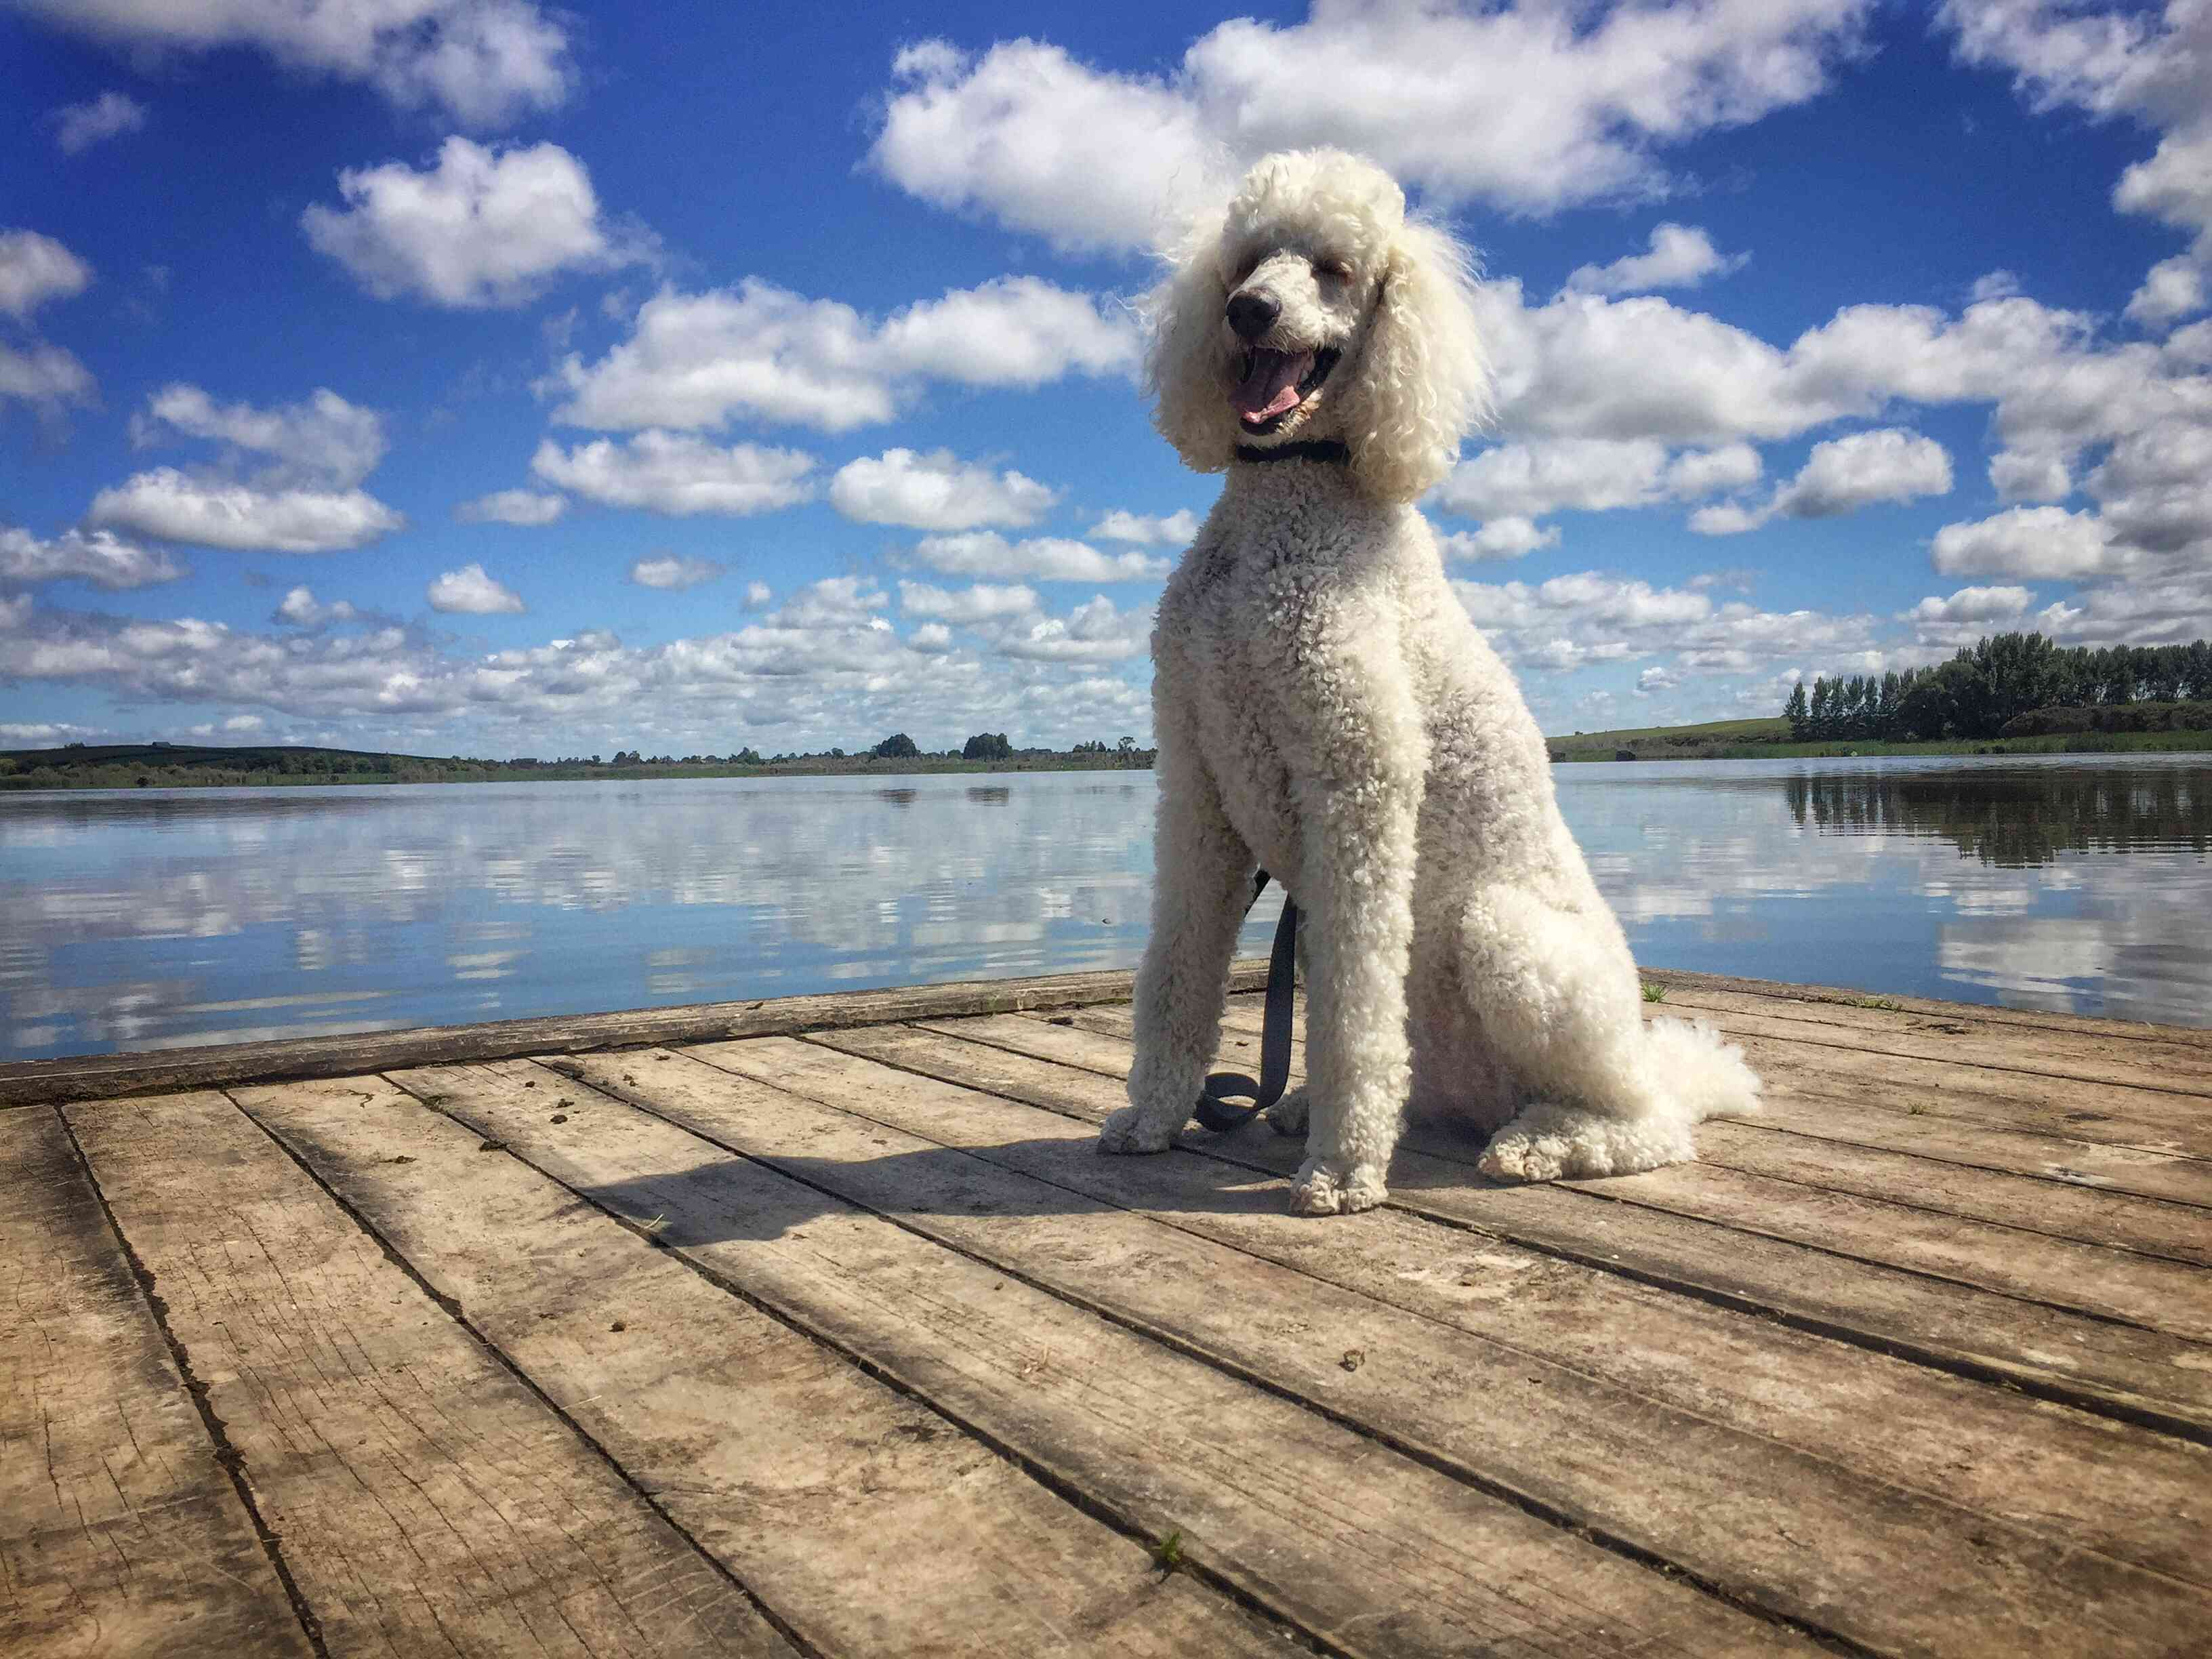 A poodle sitting on a dock